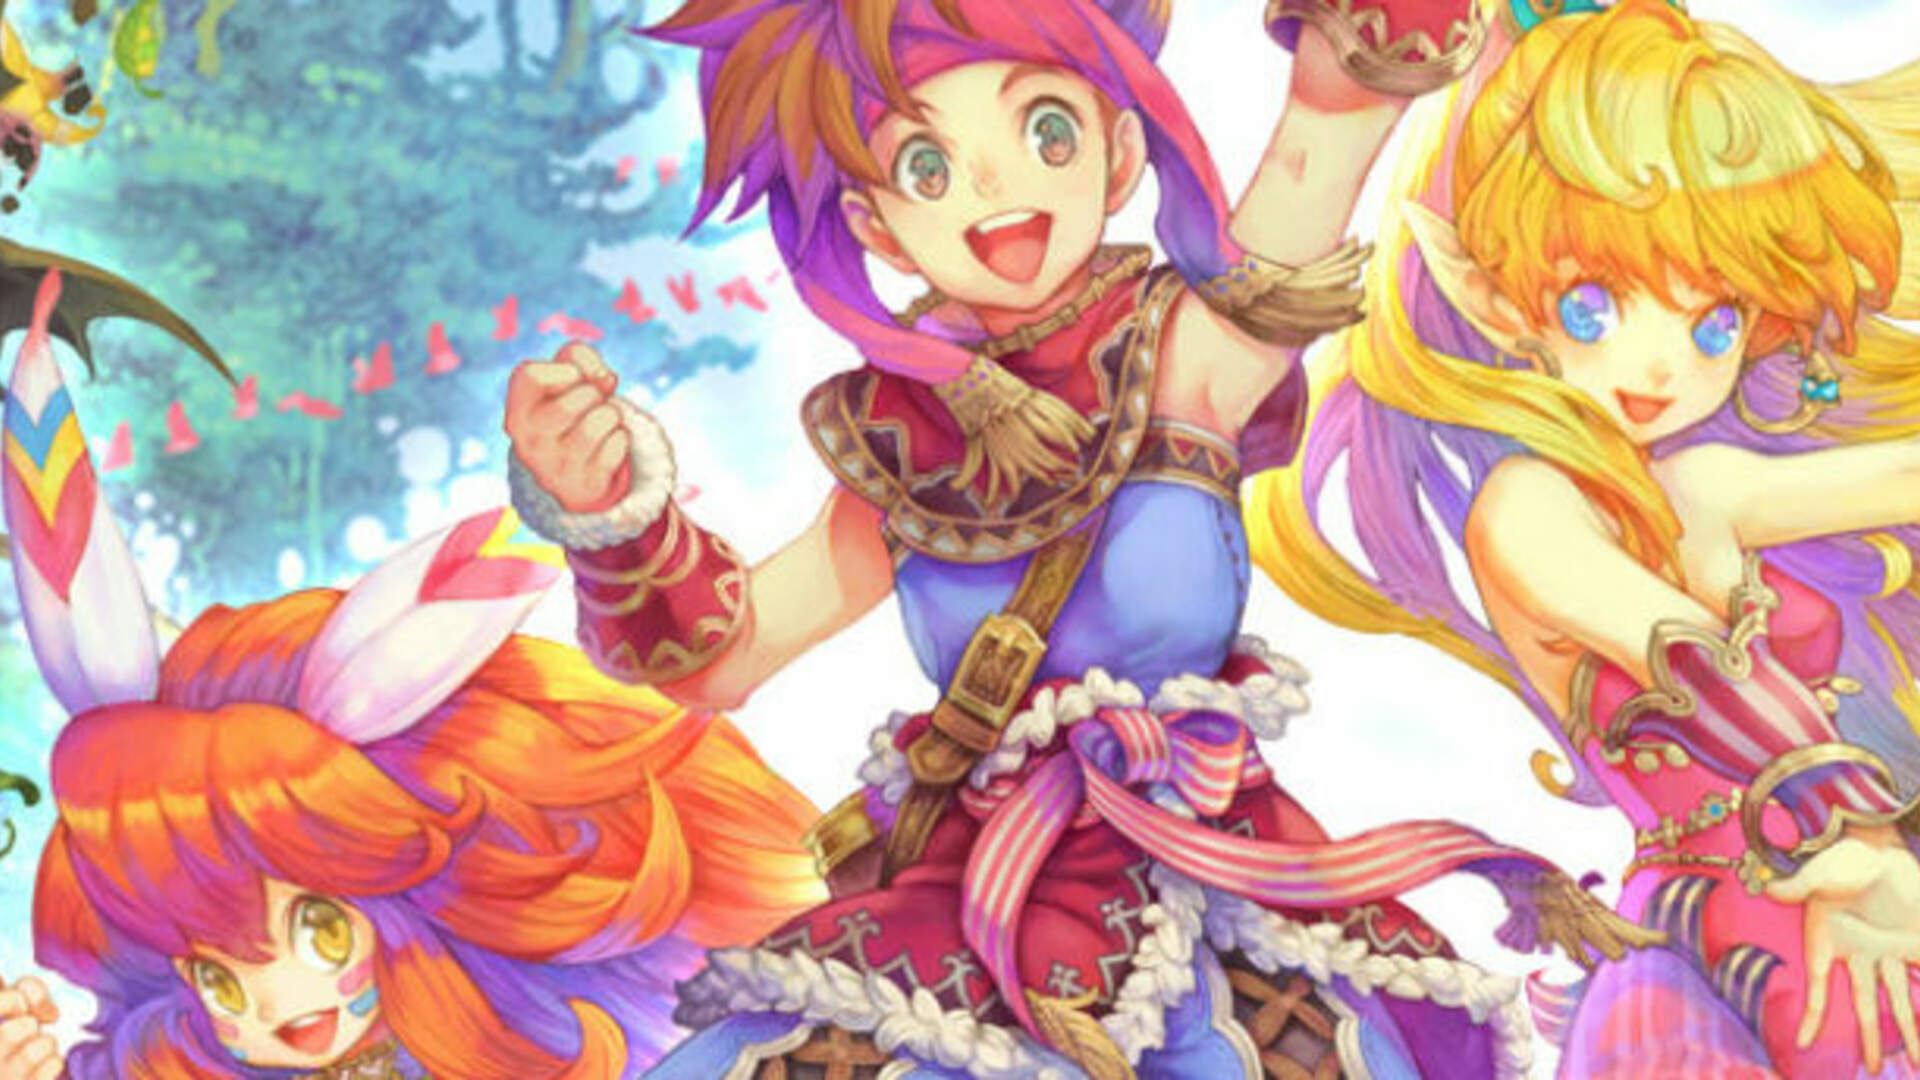 Secret of Mana Gets a Remake on PS4, Vita, and PC